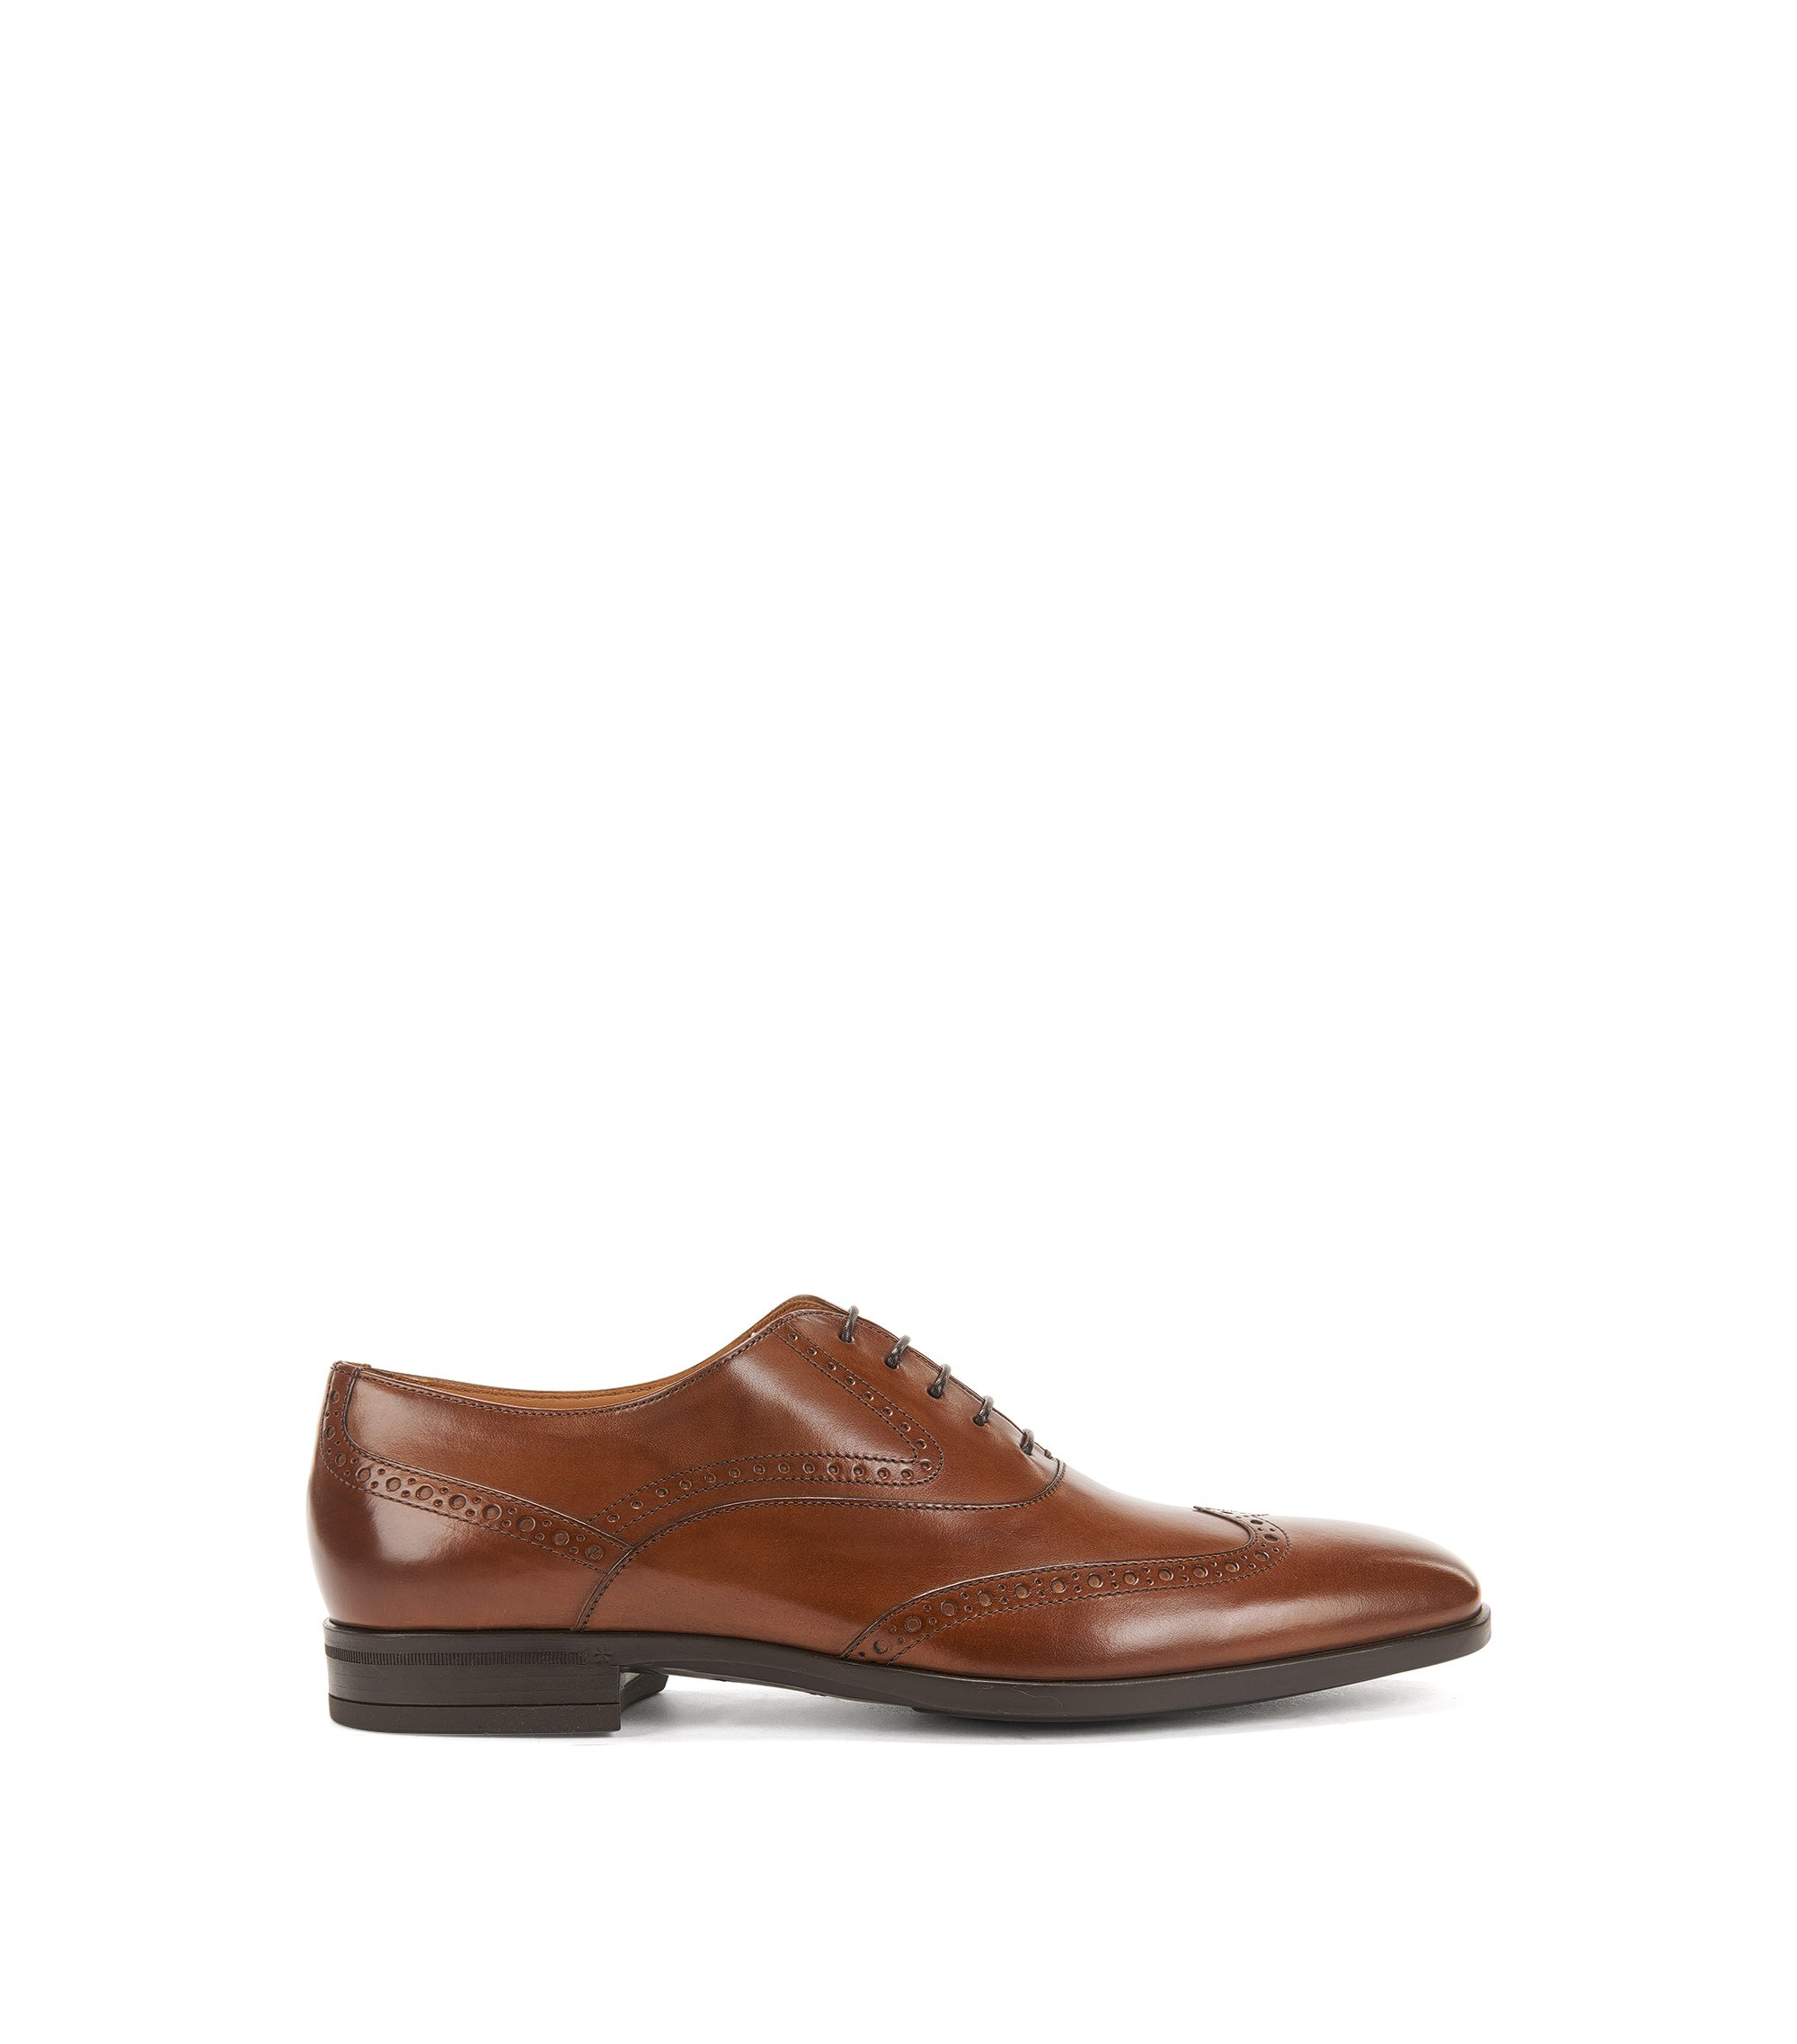 Italian-made burnished leather Oxford shoes with brogue detailing, Khaki